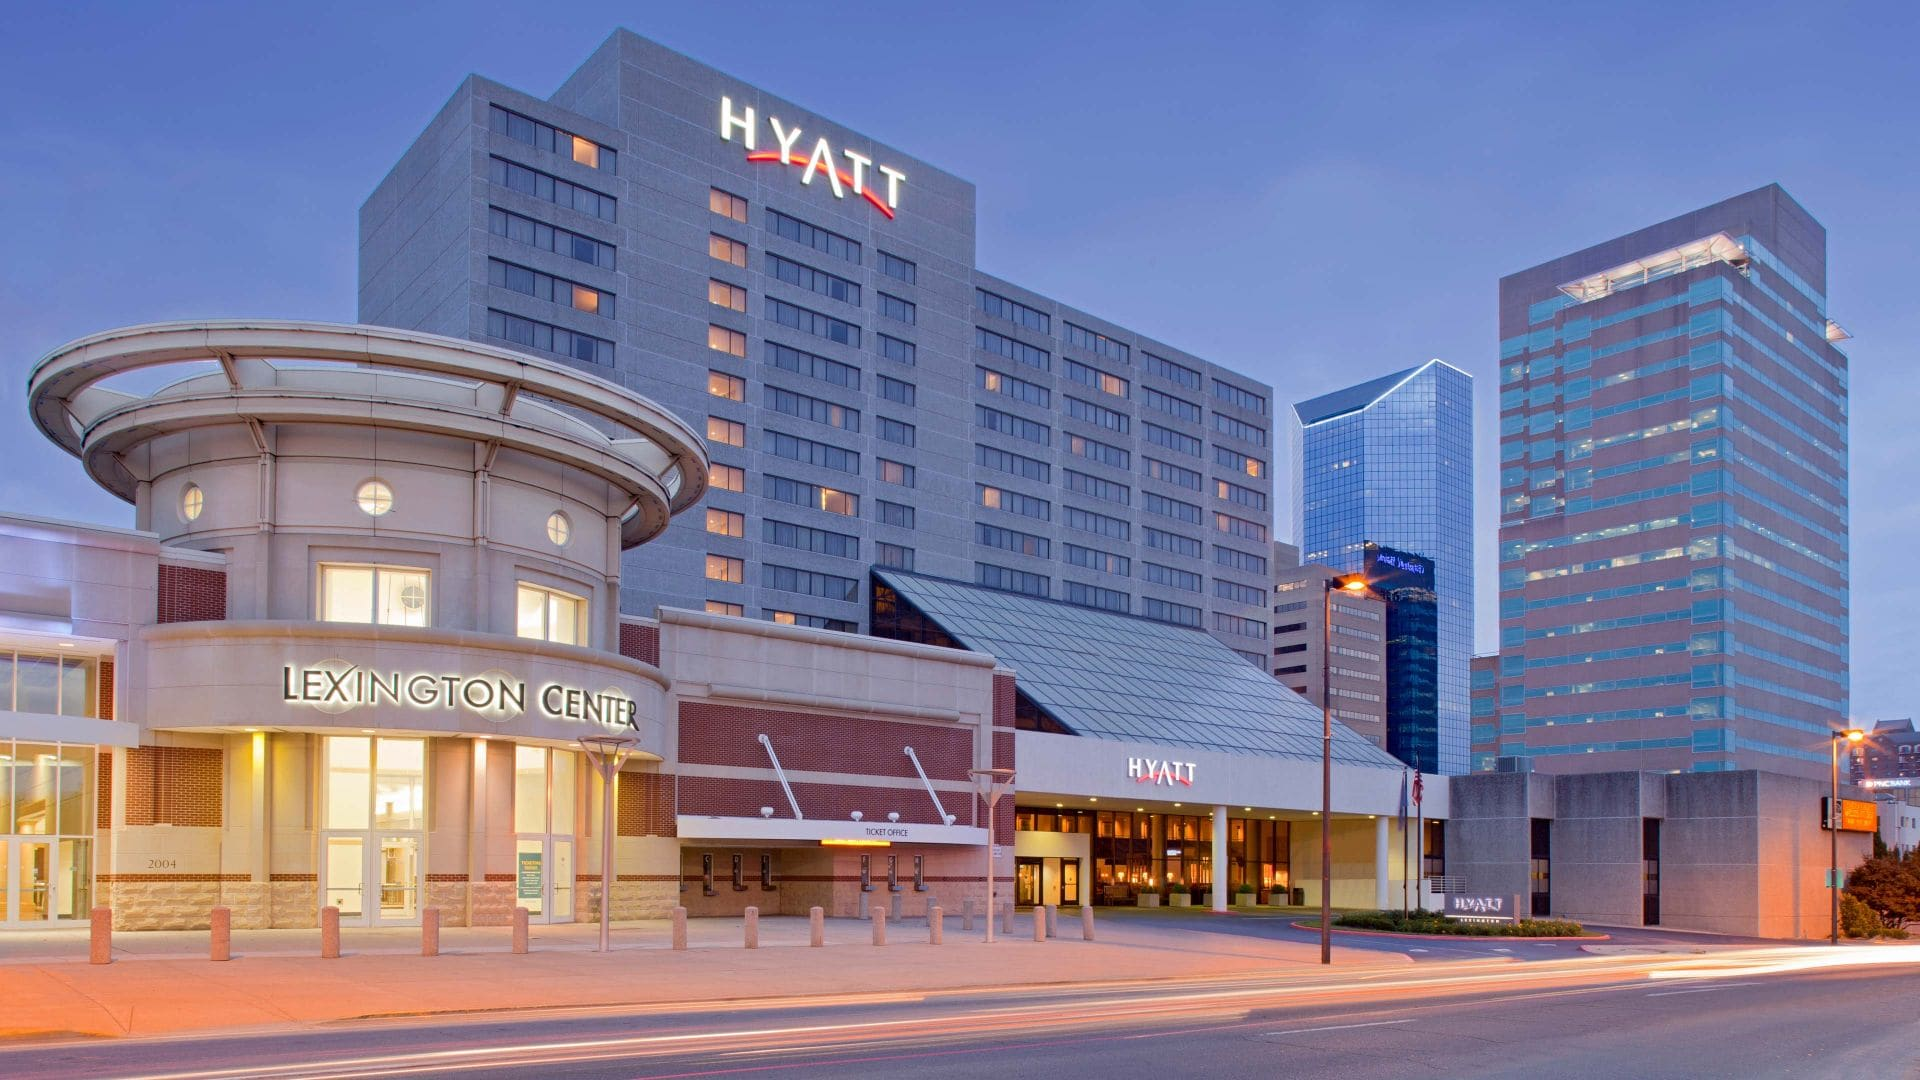 Hyatt Announces Expansion Plan in India - BW Hotelier